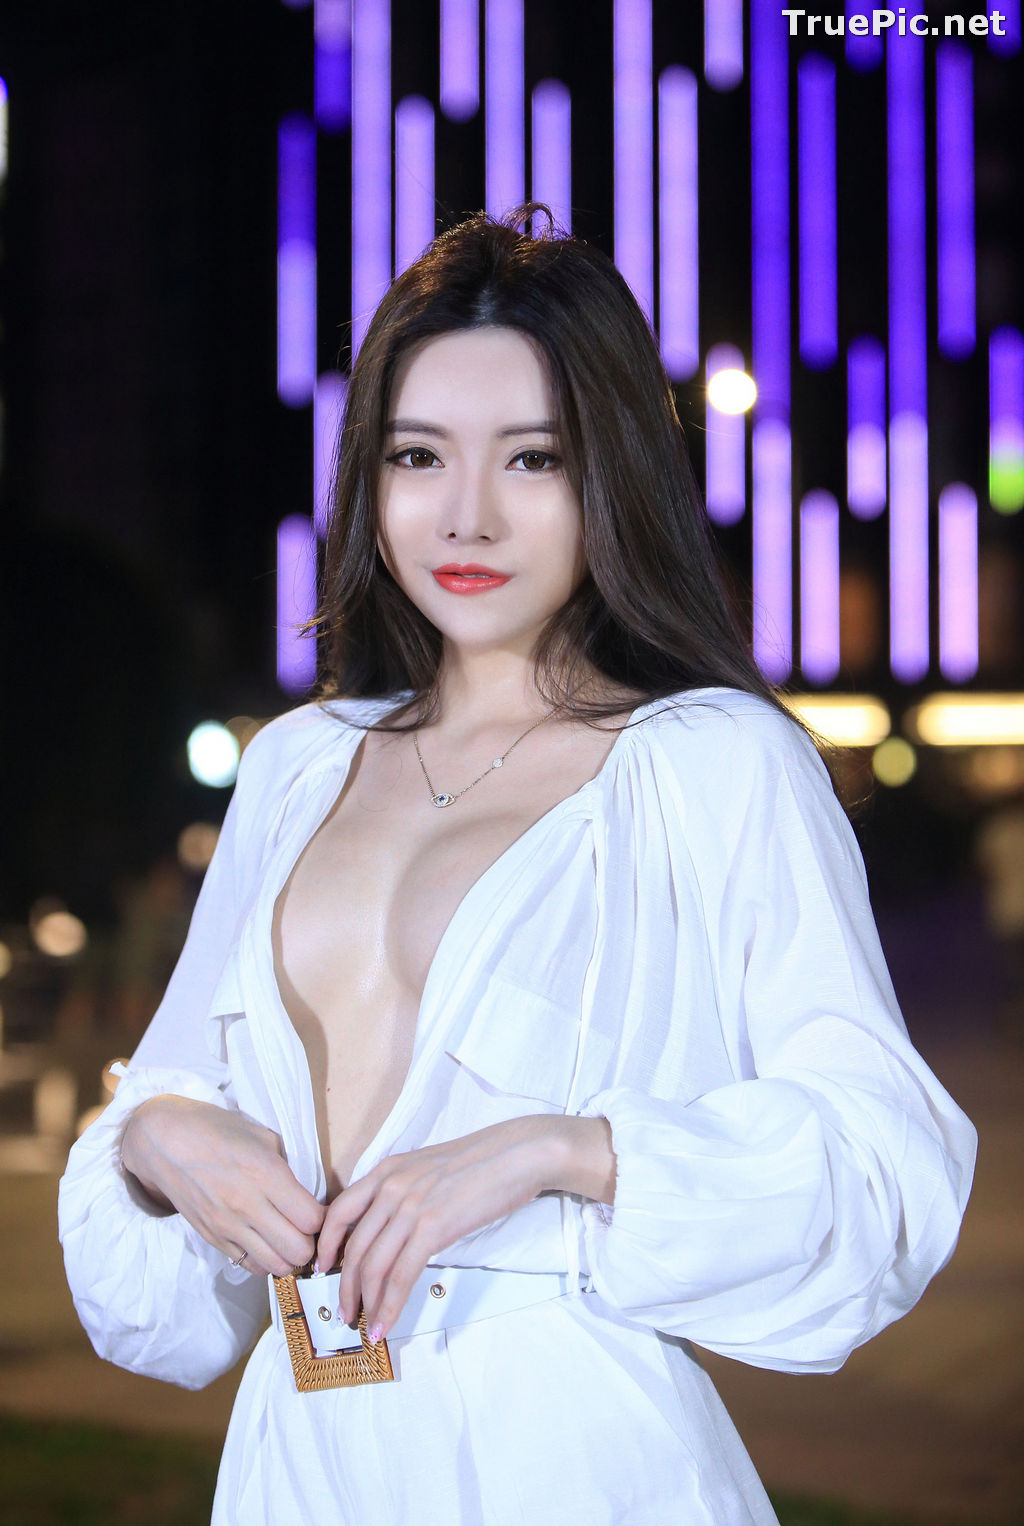 Image Taiwanese Model – 莊舒潔 (ViVi) – Sexy and Pure Baby In Night - TruePic.net - Picture-40